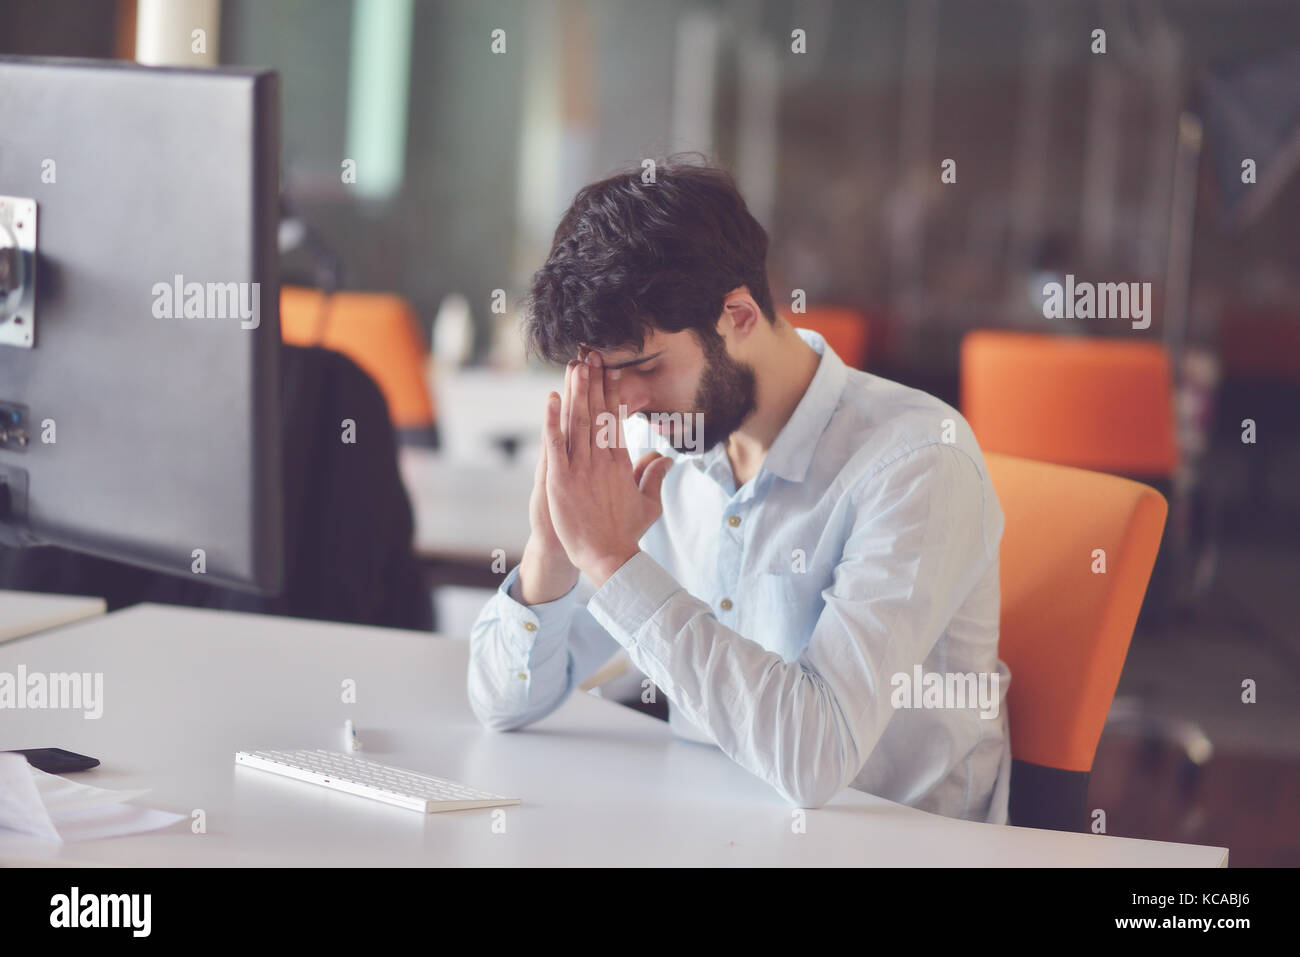 young business man working on desktop computer at his desk in modern bright startup office interior - Stock Image